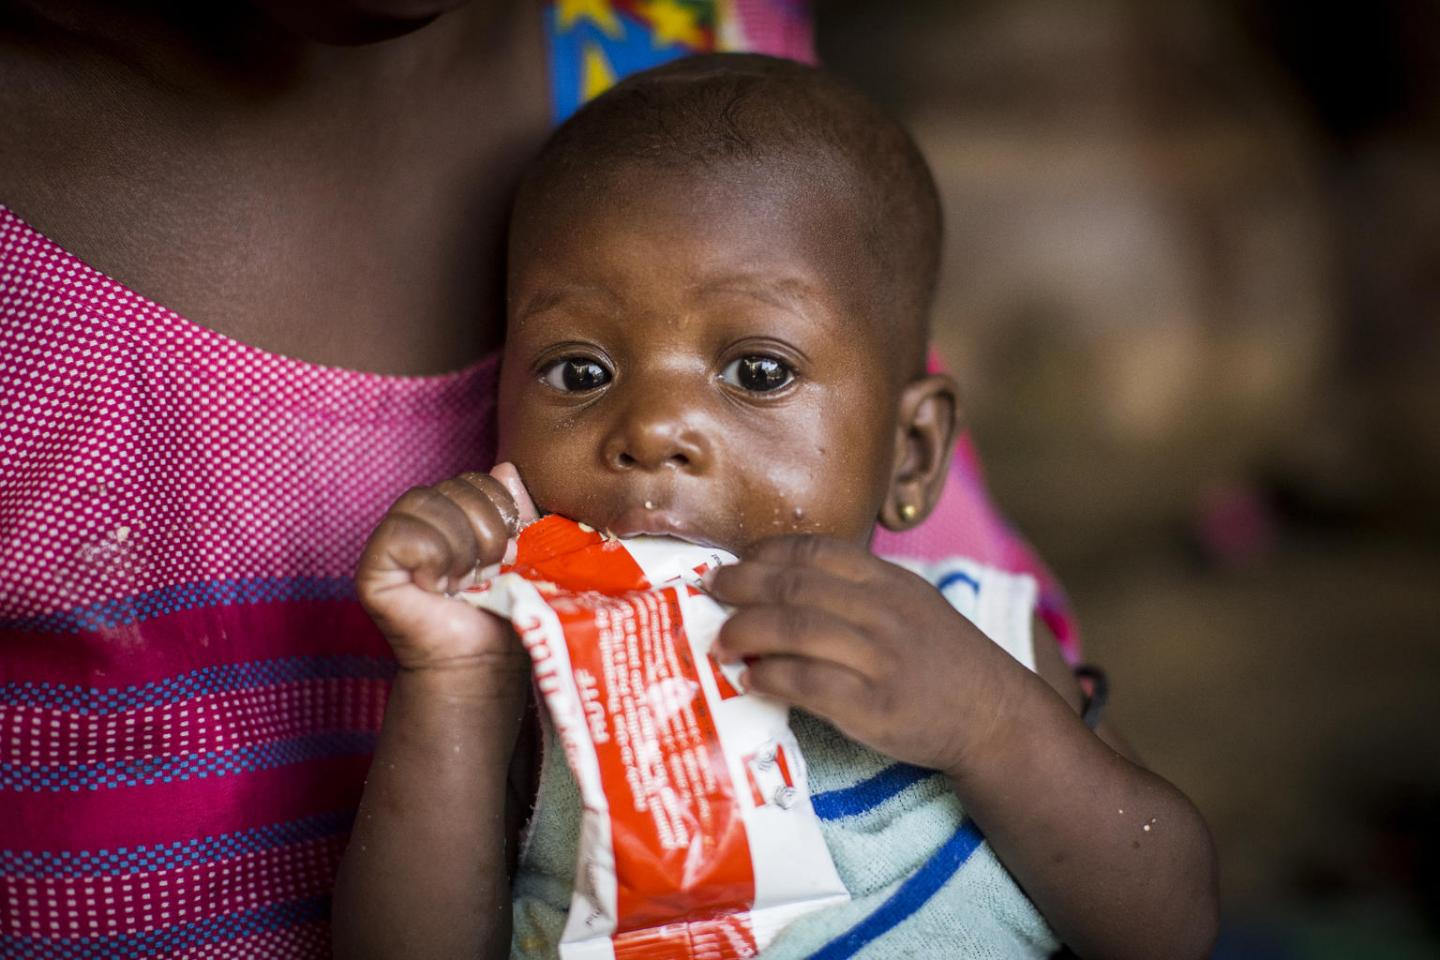 UNICEF: An additional 6.7 million children under 5 could suffer from wasting this year due to COVID-19